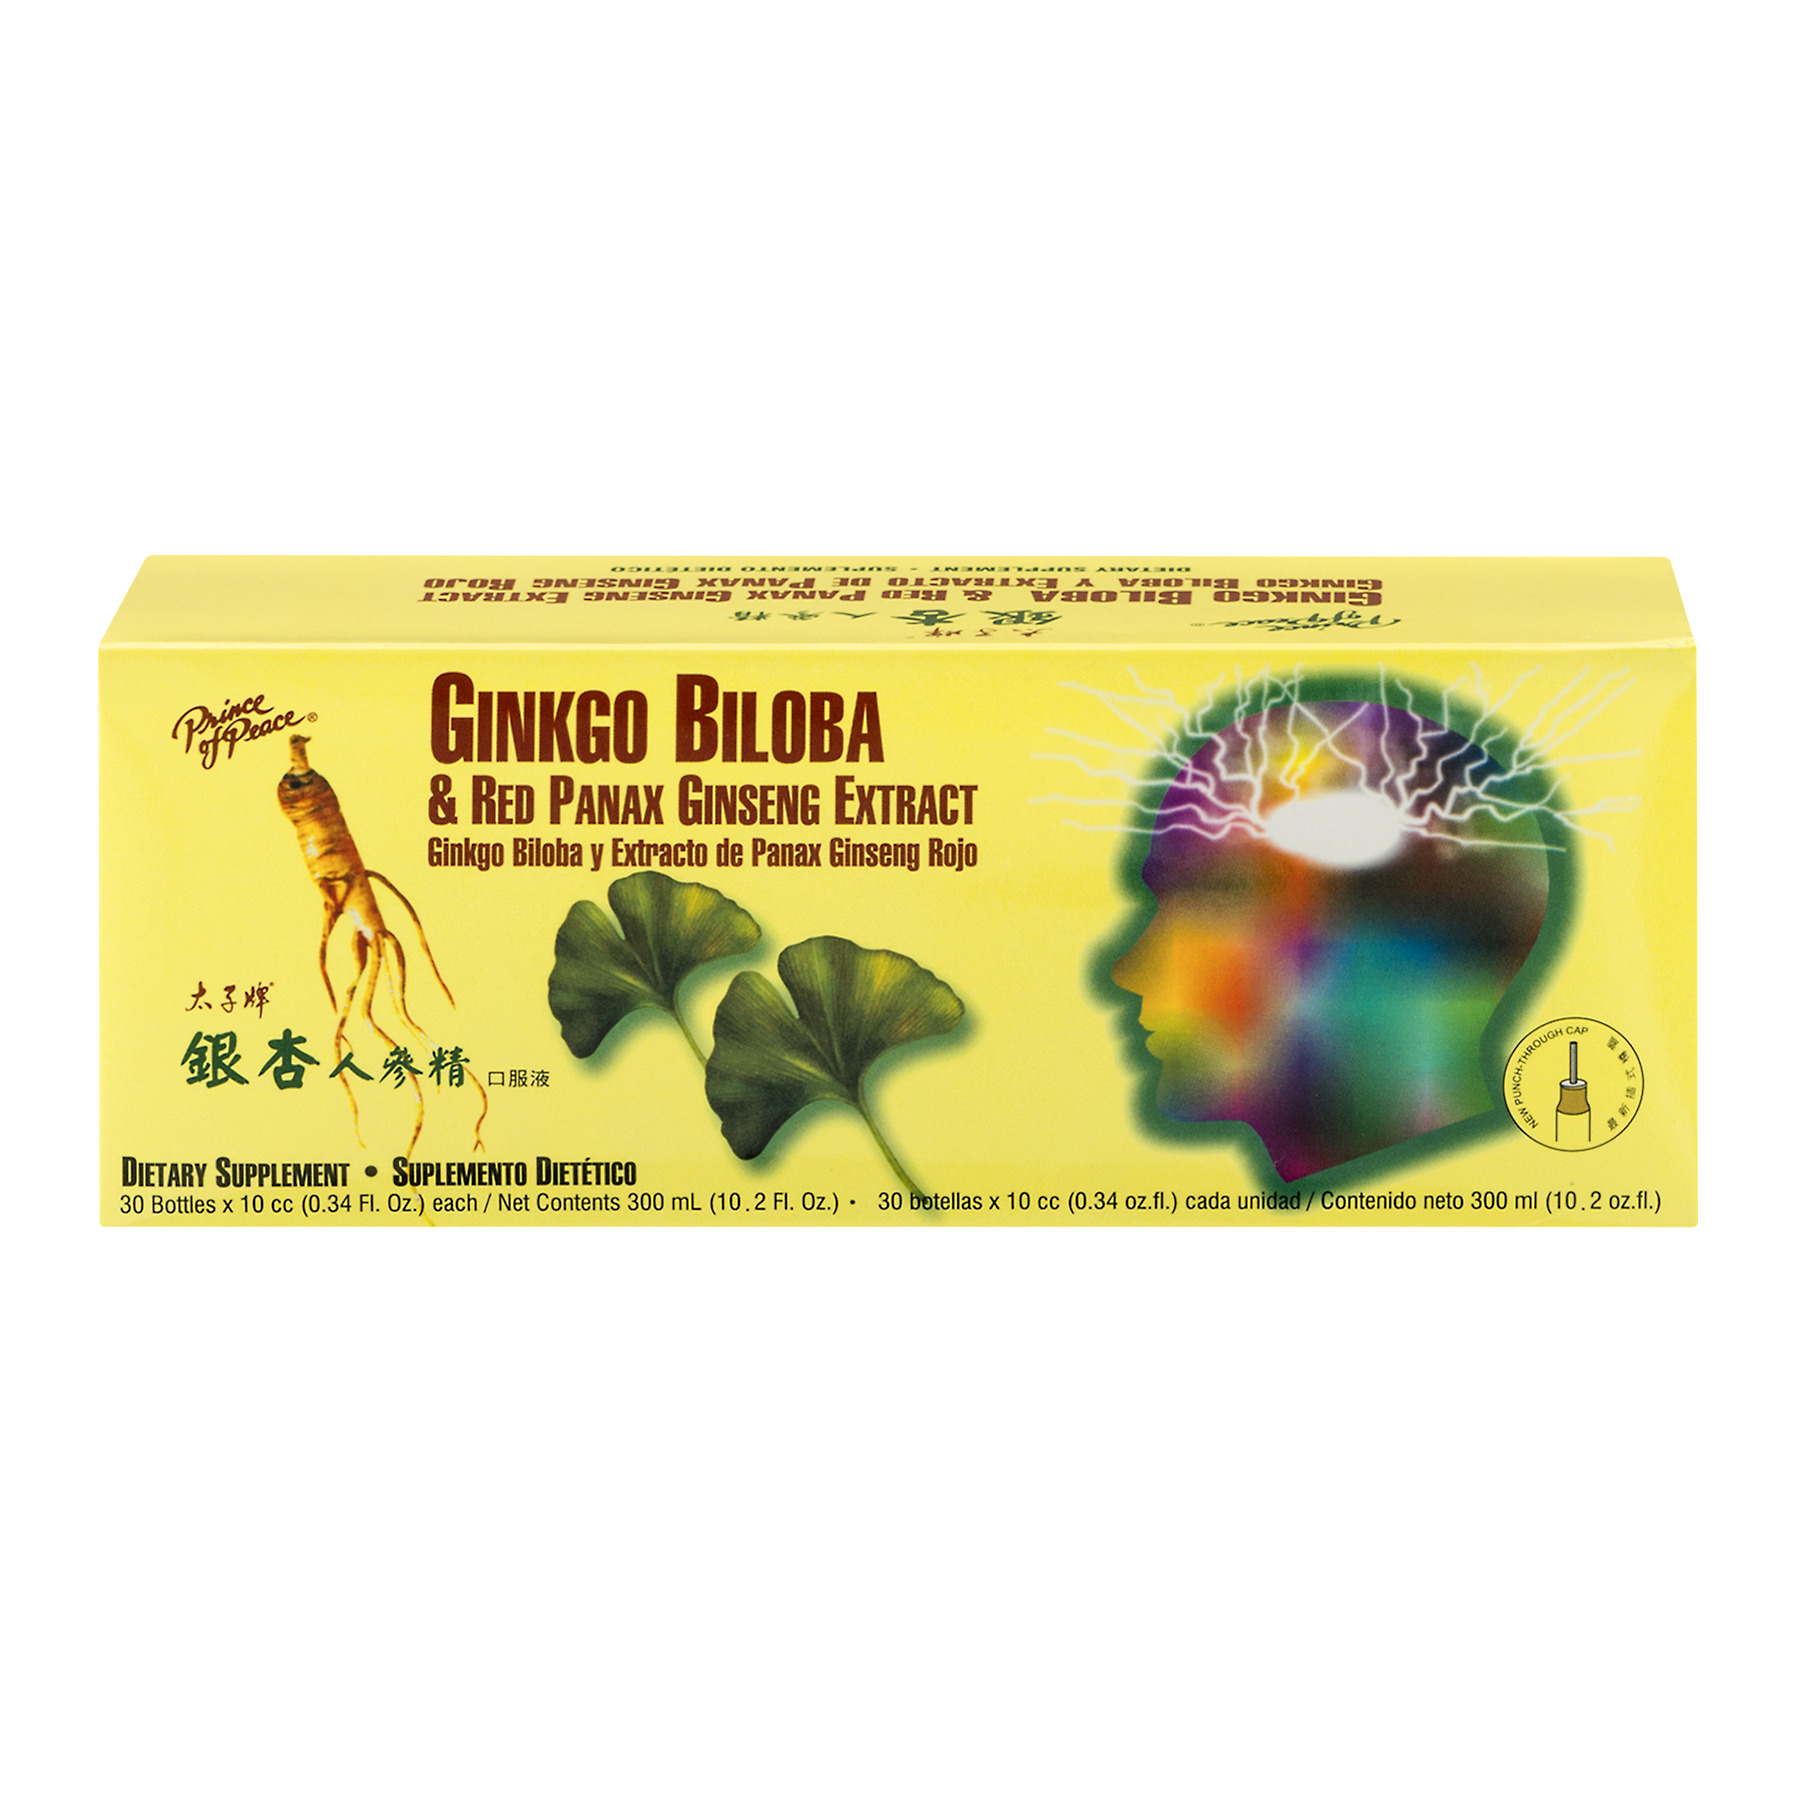 Prince of Peace Ginkgo Biloba & Red Panax Ginseng Extract Dietary Supplement - 30 CT0.34 FL OZ